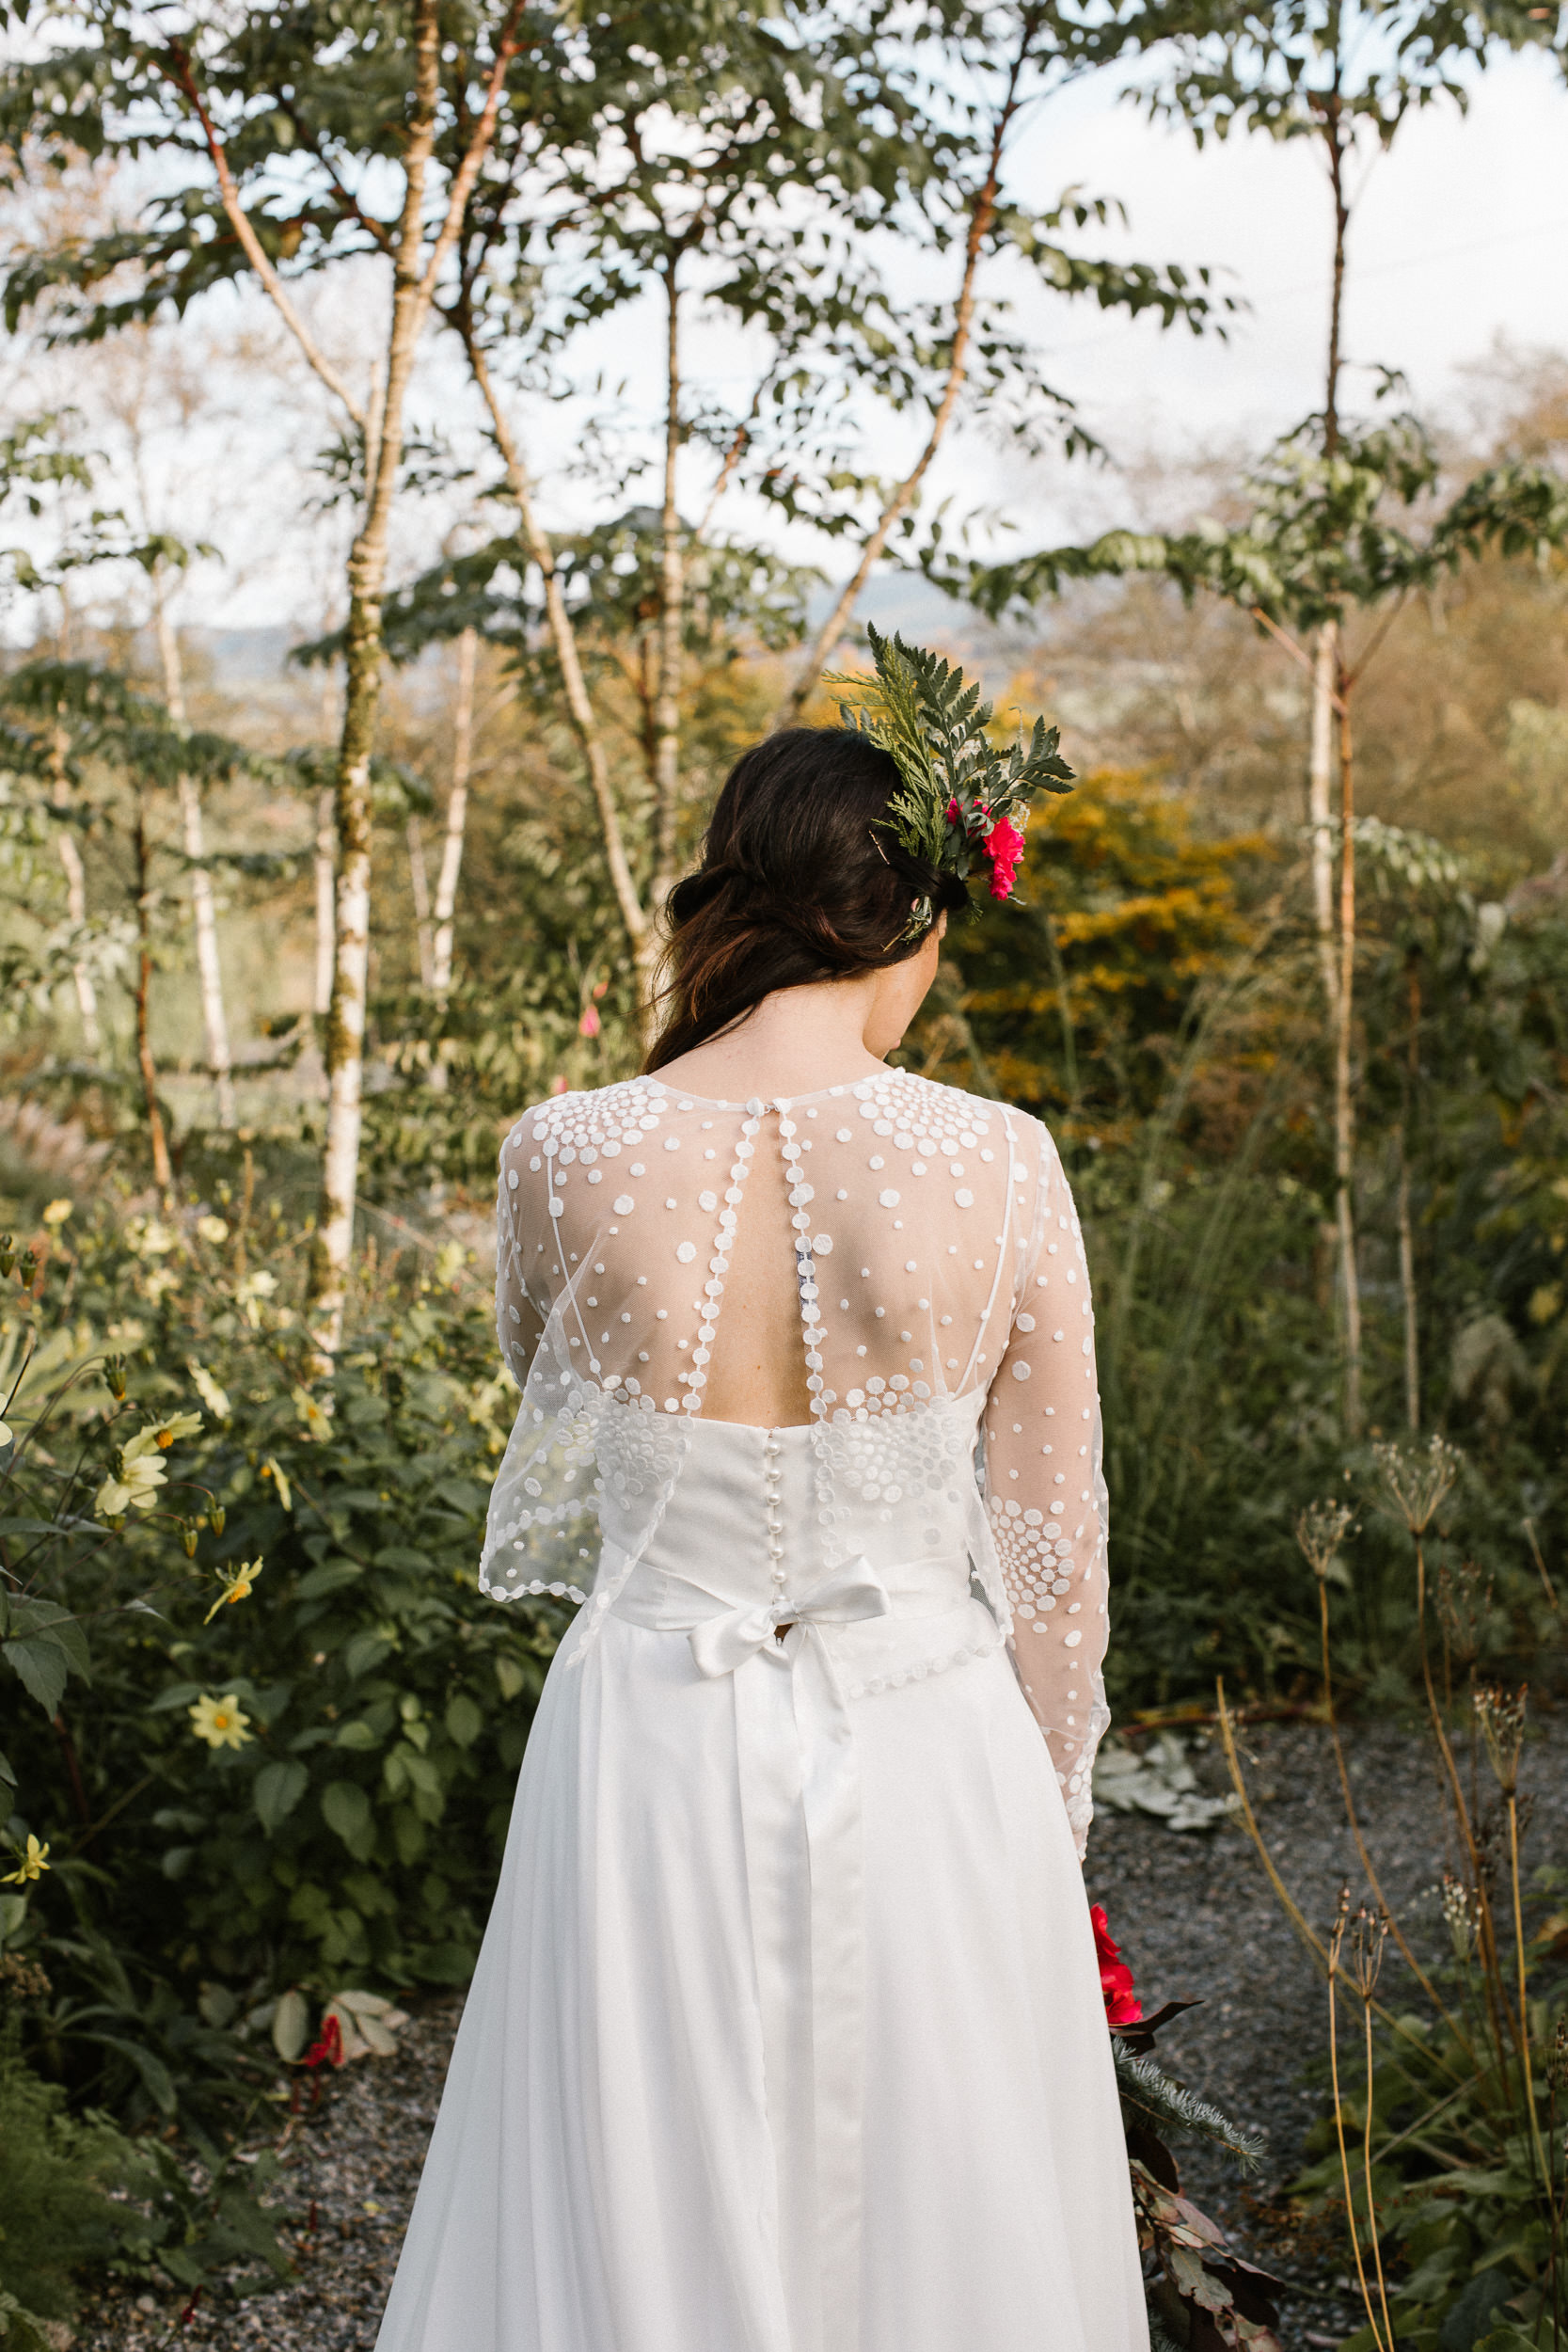 clairebyrnephotography-styled-shoot-huntingbrook-gardens-inspiration-weddings-woods-forest-86.jpg